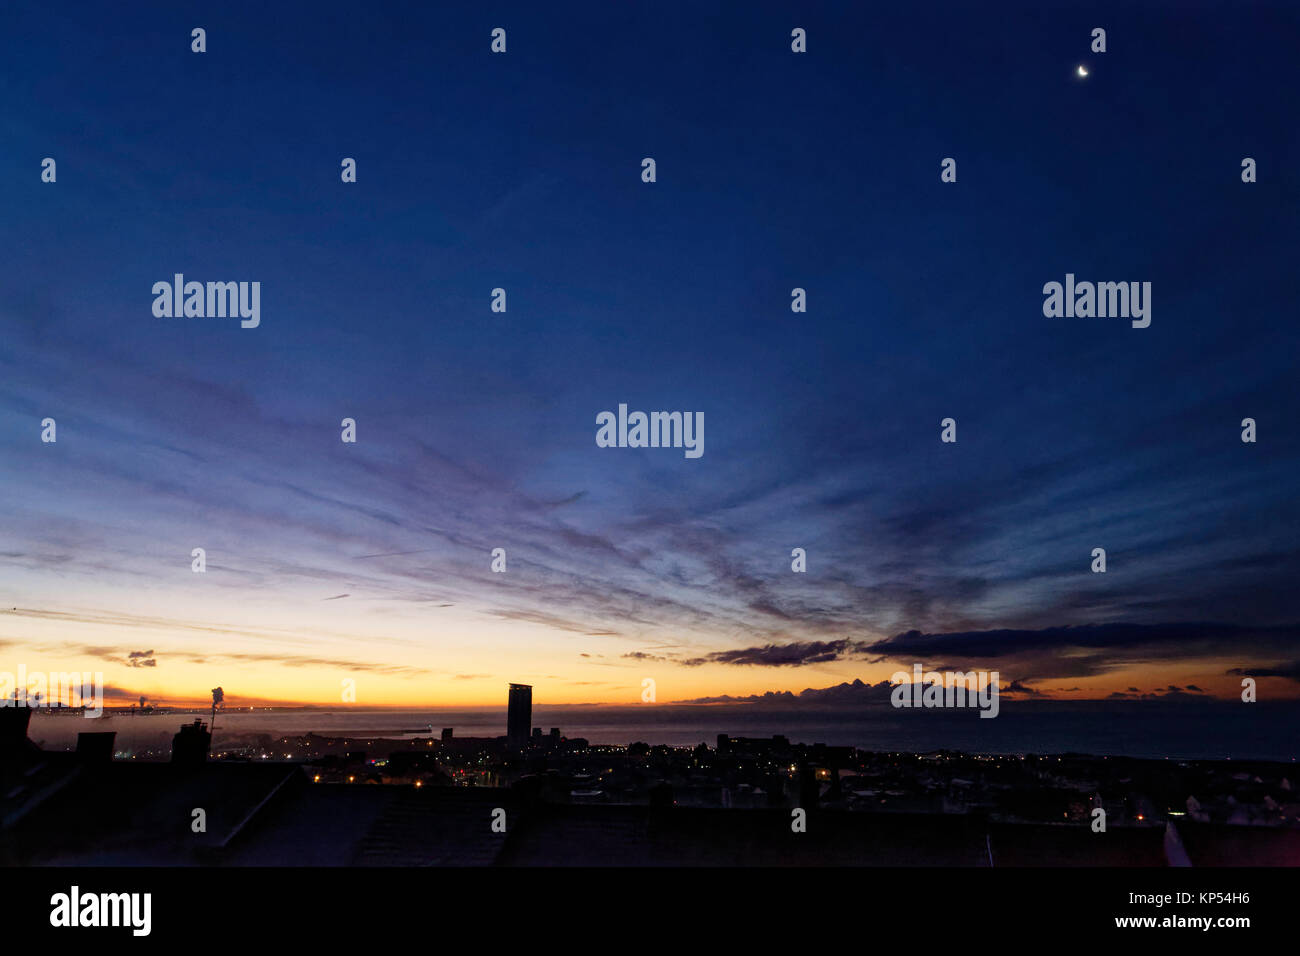 A crescent moon is still visible in the clear sky over roof tops during an early frosty morning in Swansea, Wales, - Stock Image